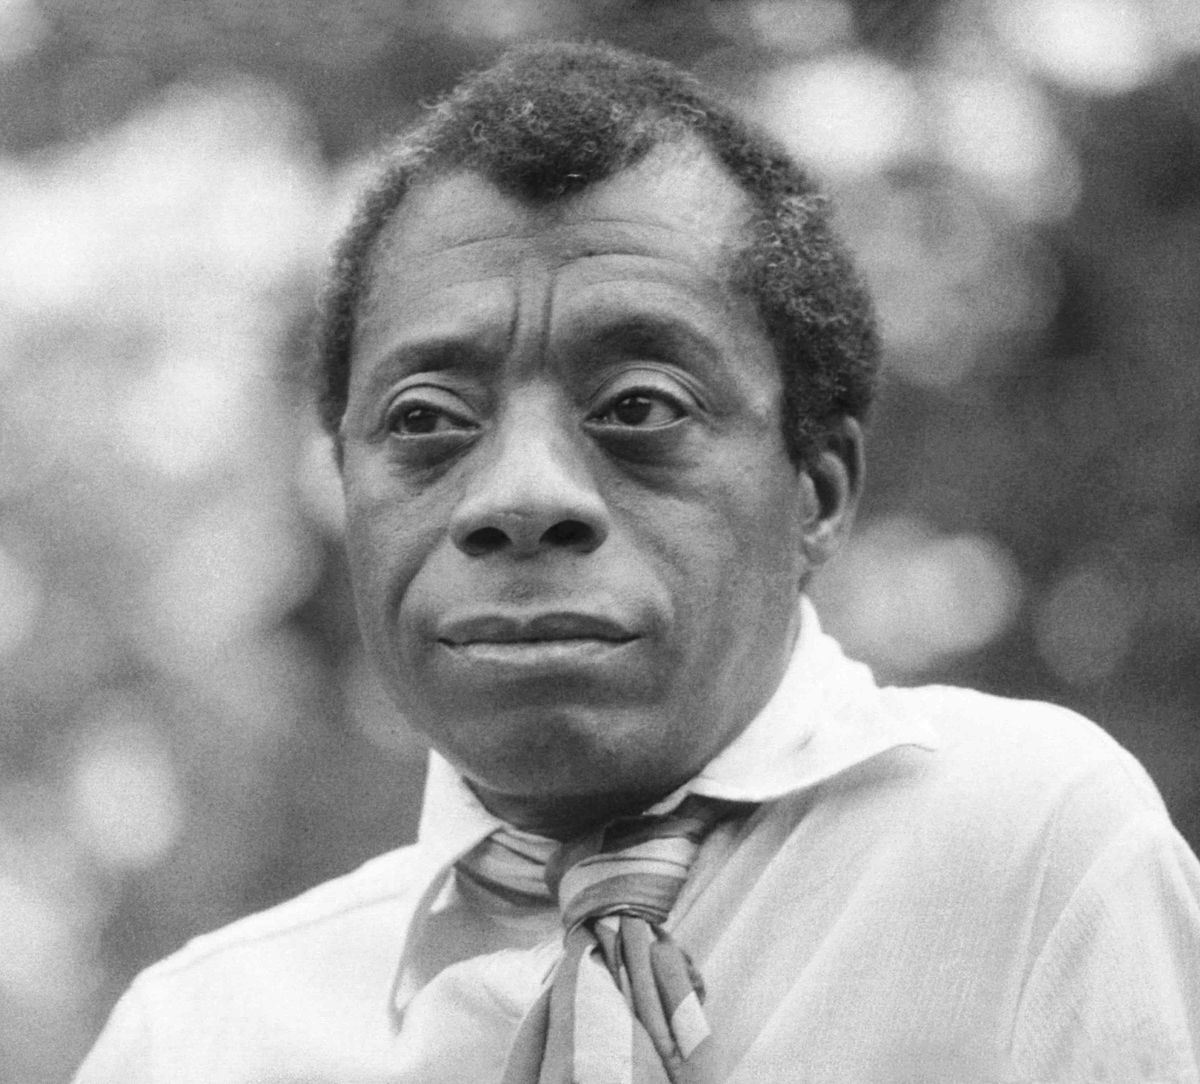 James_Baldwin_37_Allan_Warren.jpg